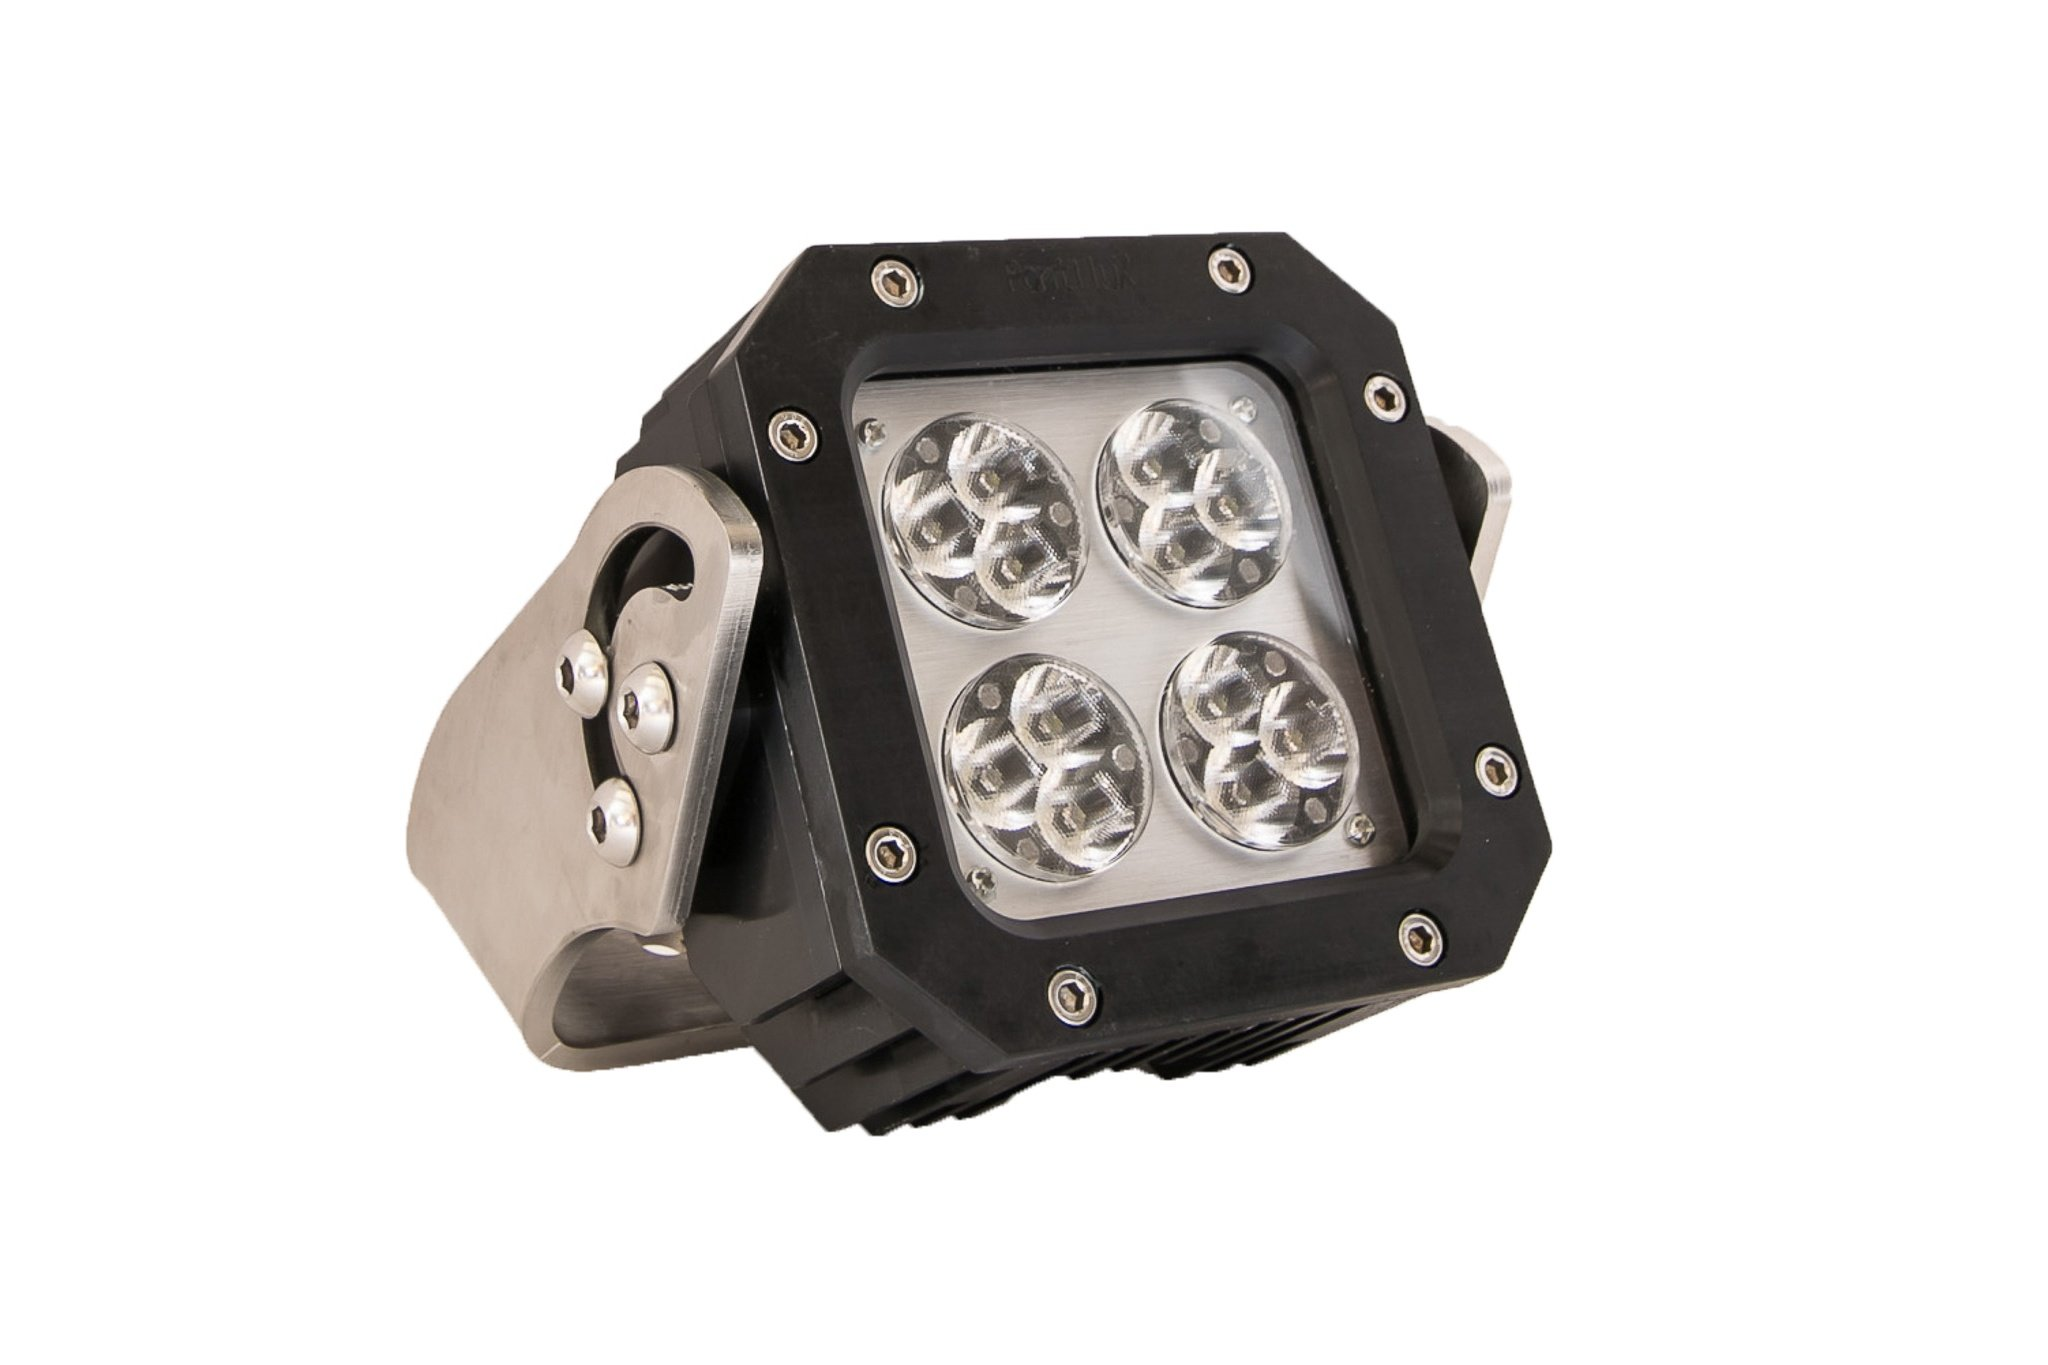 PX12 High Powered LED Fixture